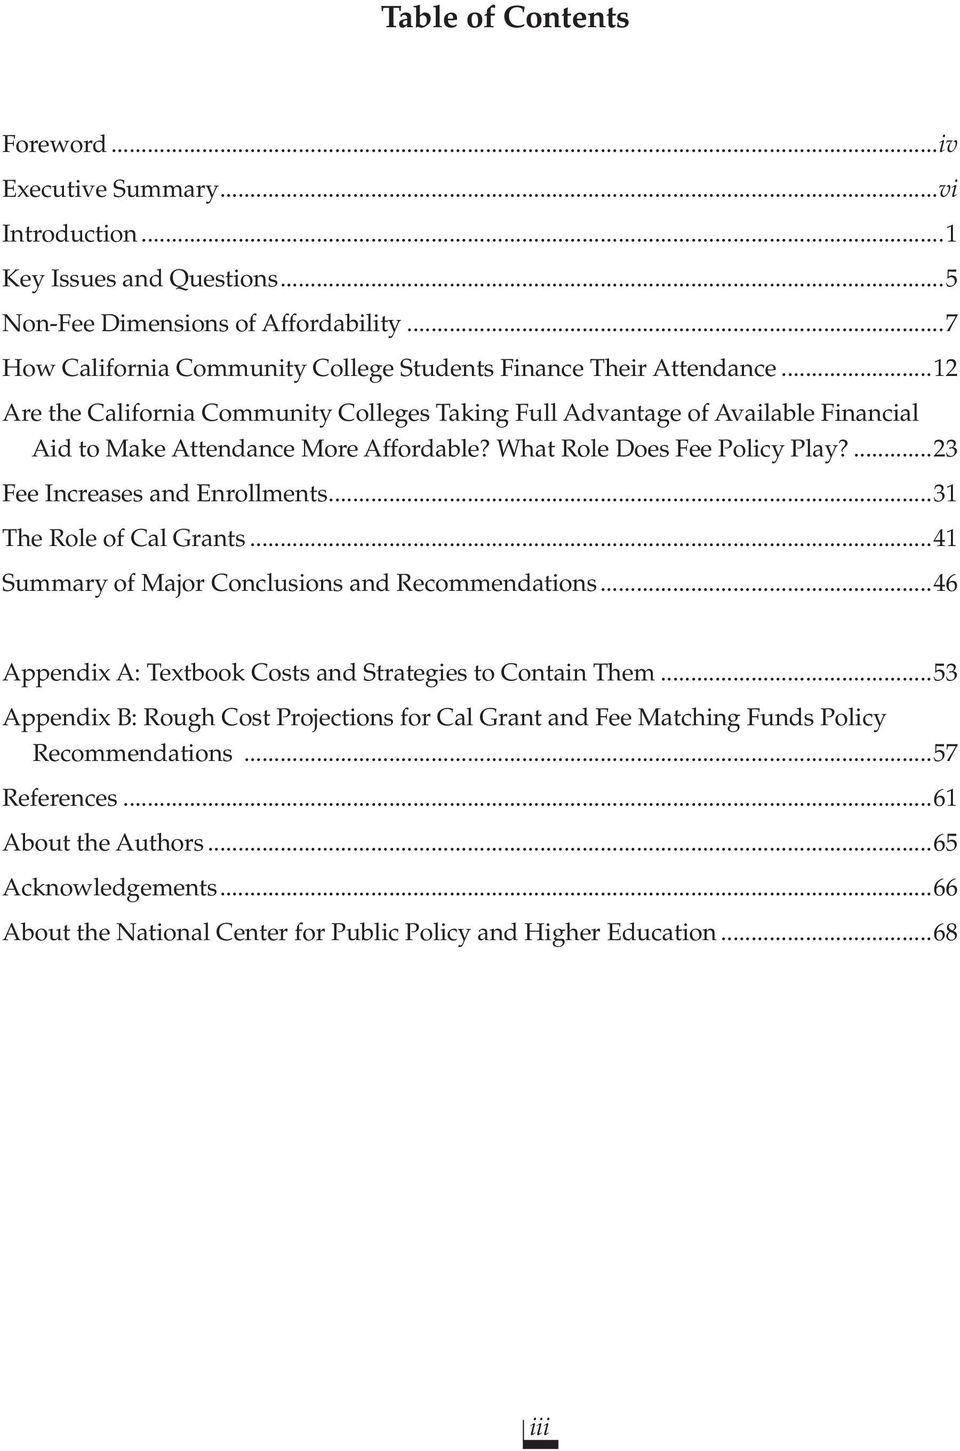 What Role Does Fee Policy Play?...23 Fee Increases and Enrollments...31 The Role of Cal Grants...41 Summary of Major Conclusions and Recommendations.